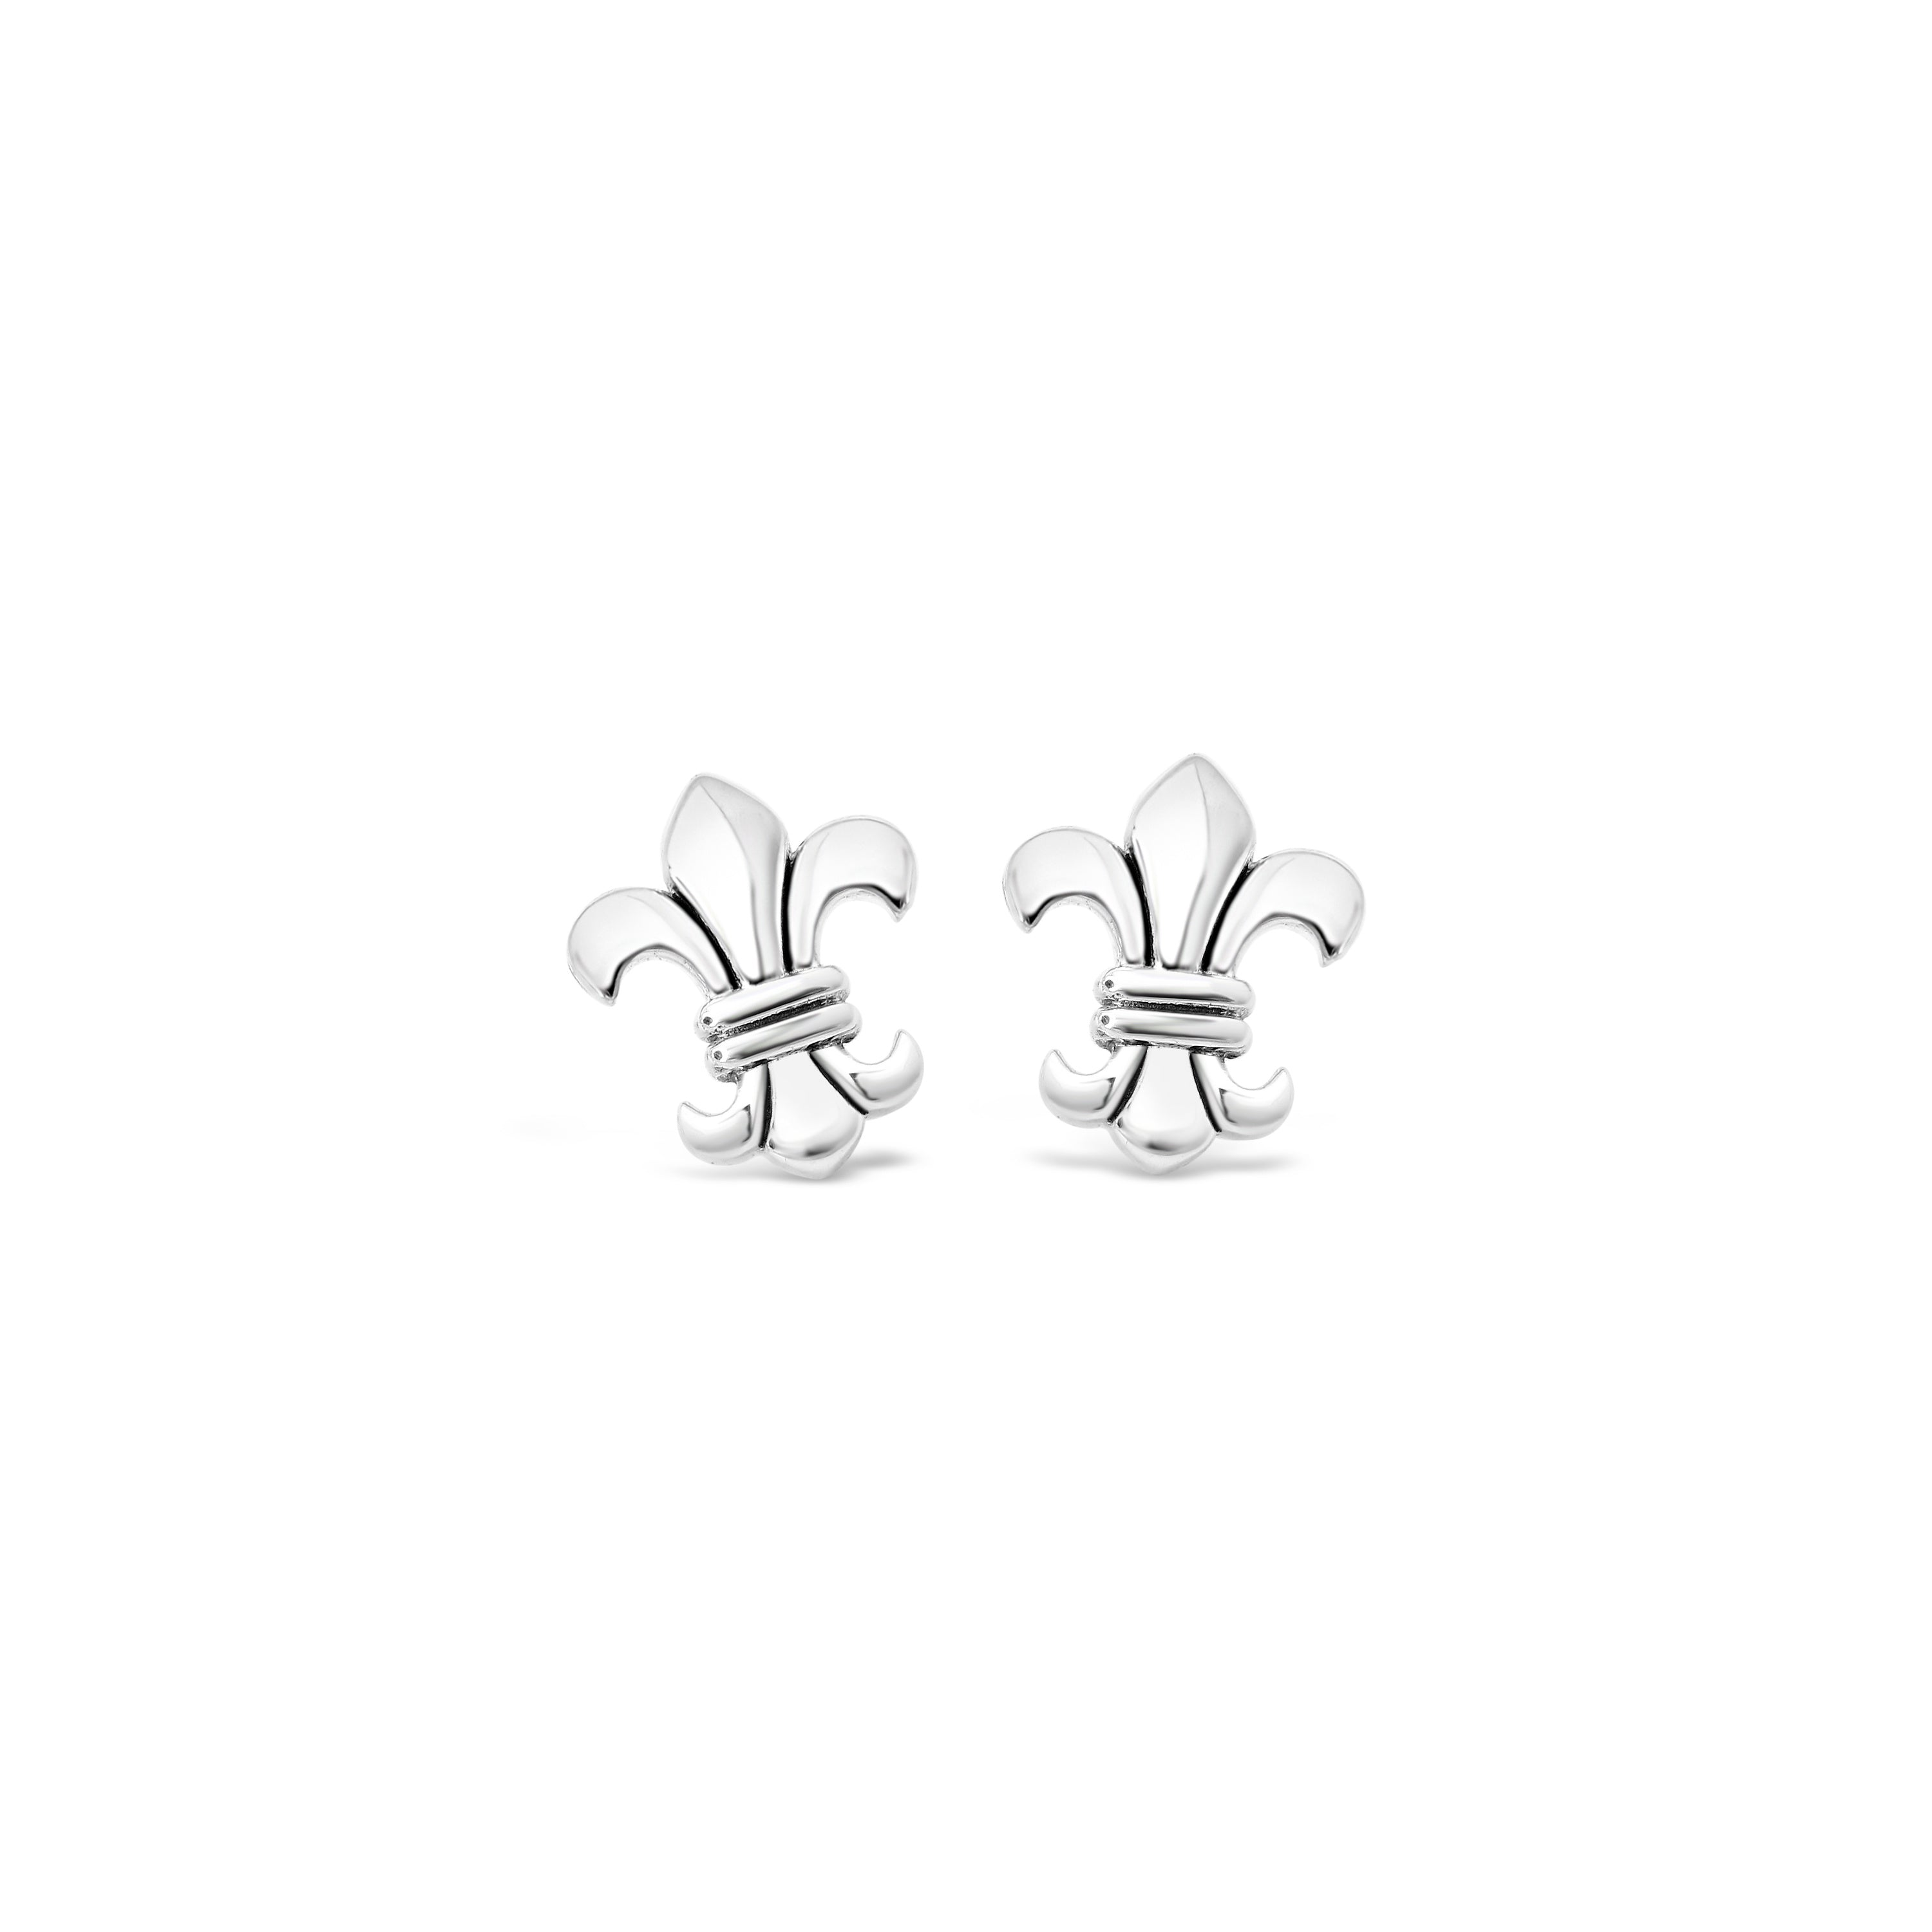 Loyalty & Dedication Fleur de Lis Dainty Earrings